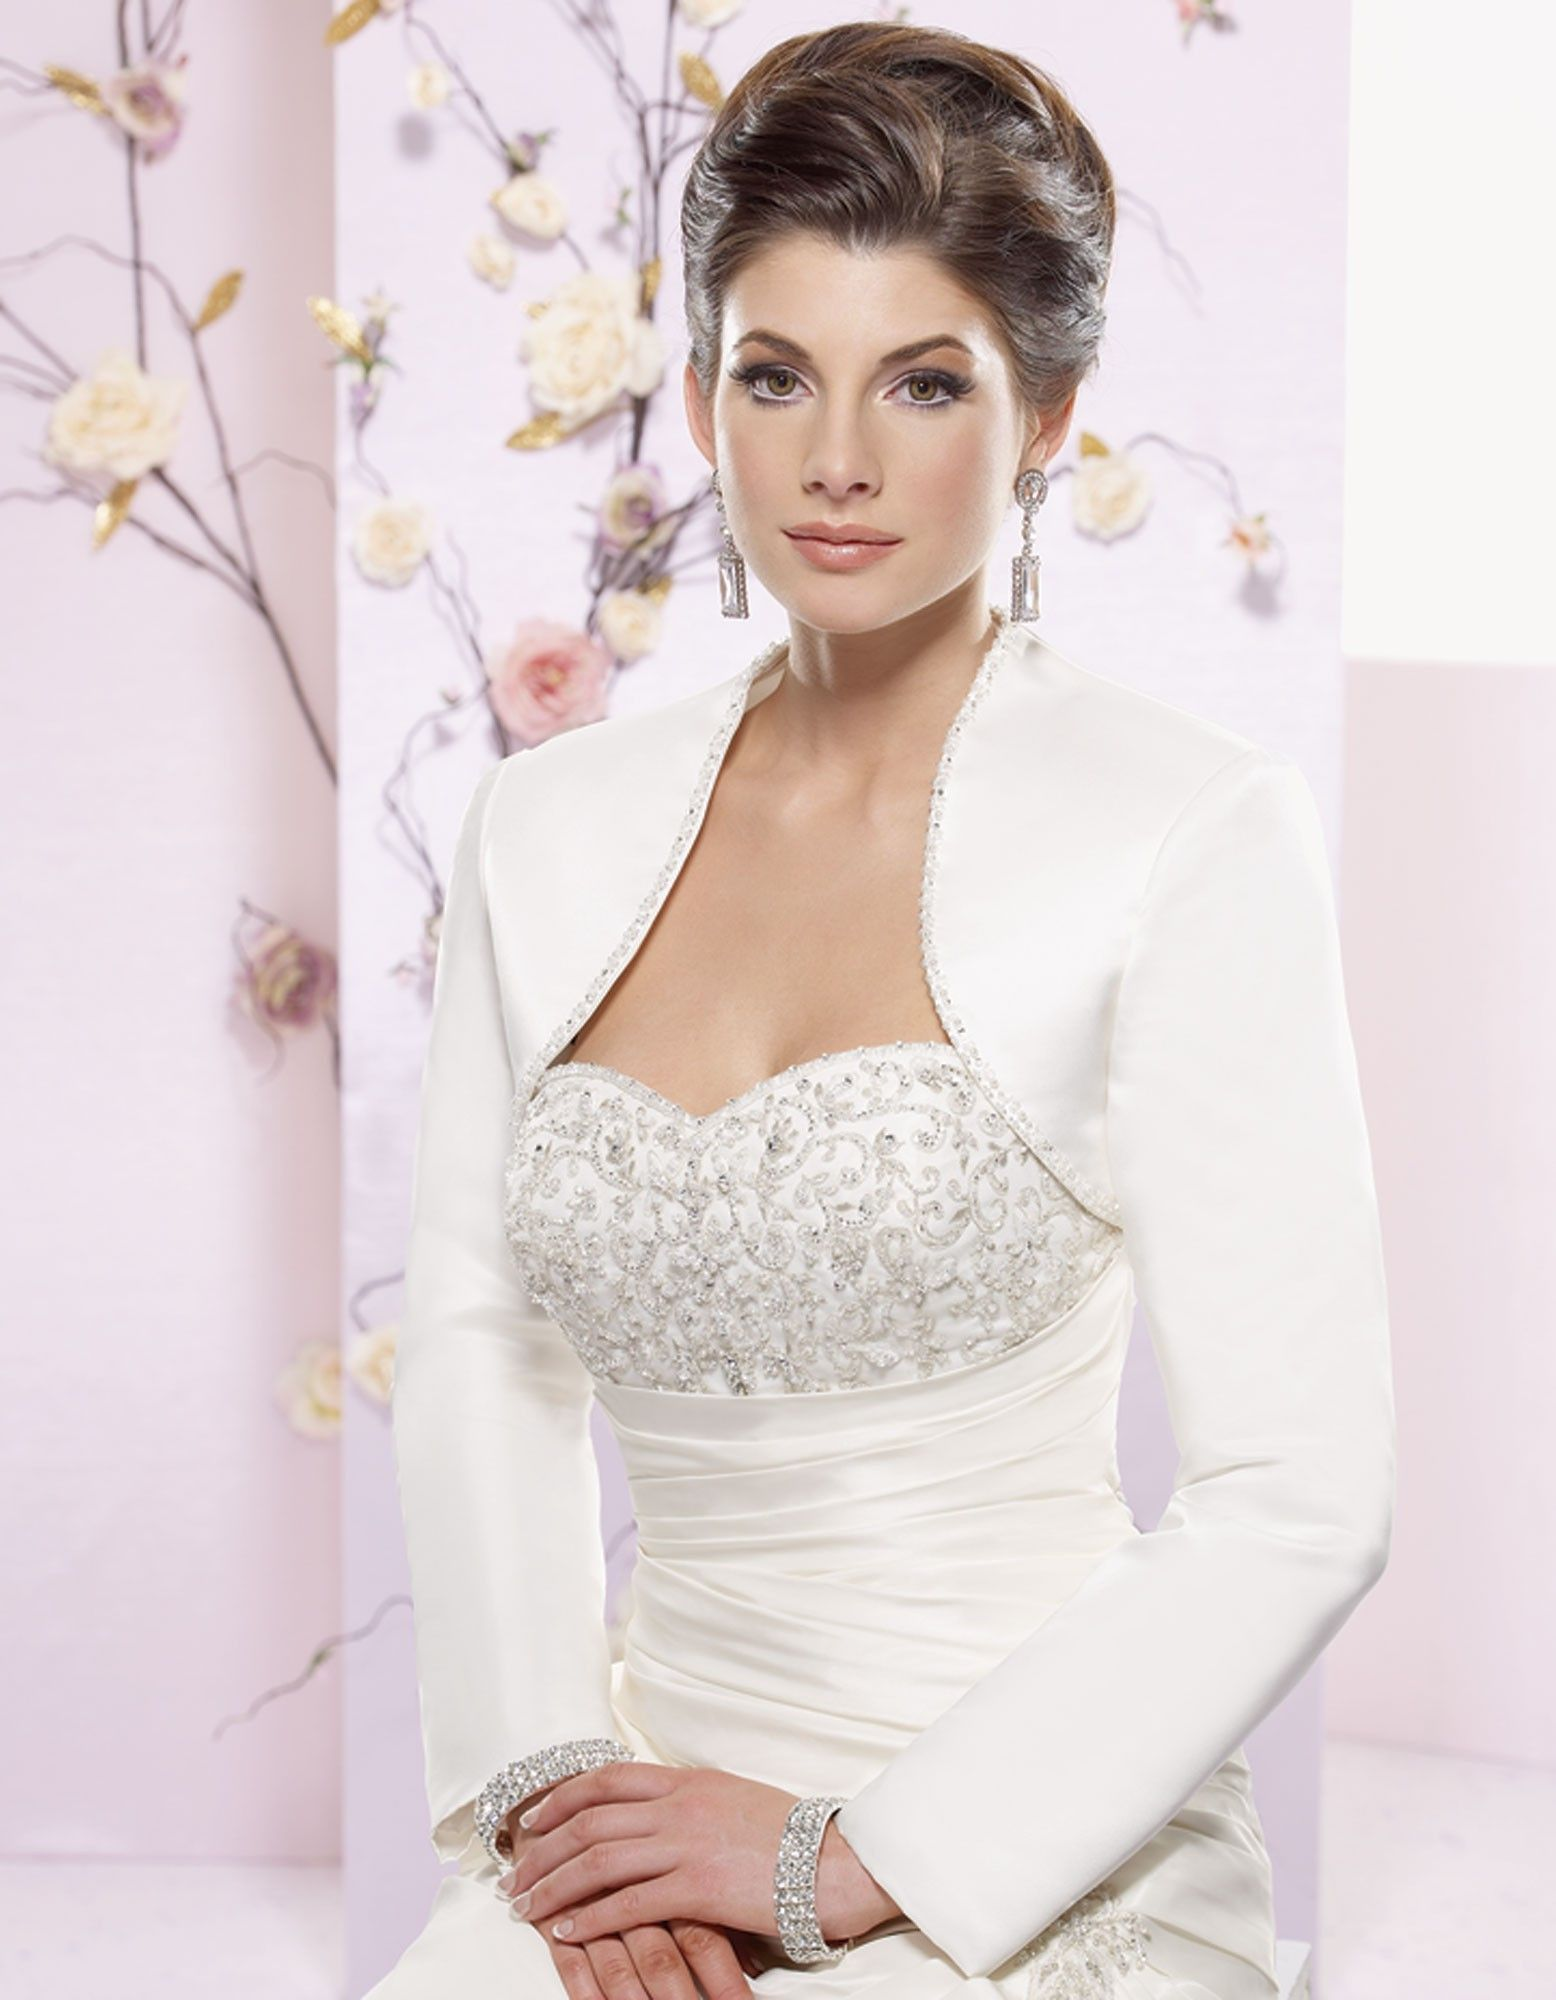 Casual wedding dress with sleeves  Charming long sleeve wedding dress jacket  a   Dream